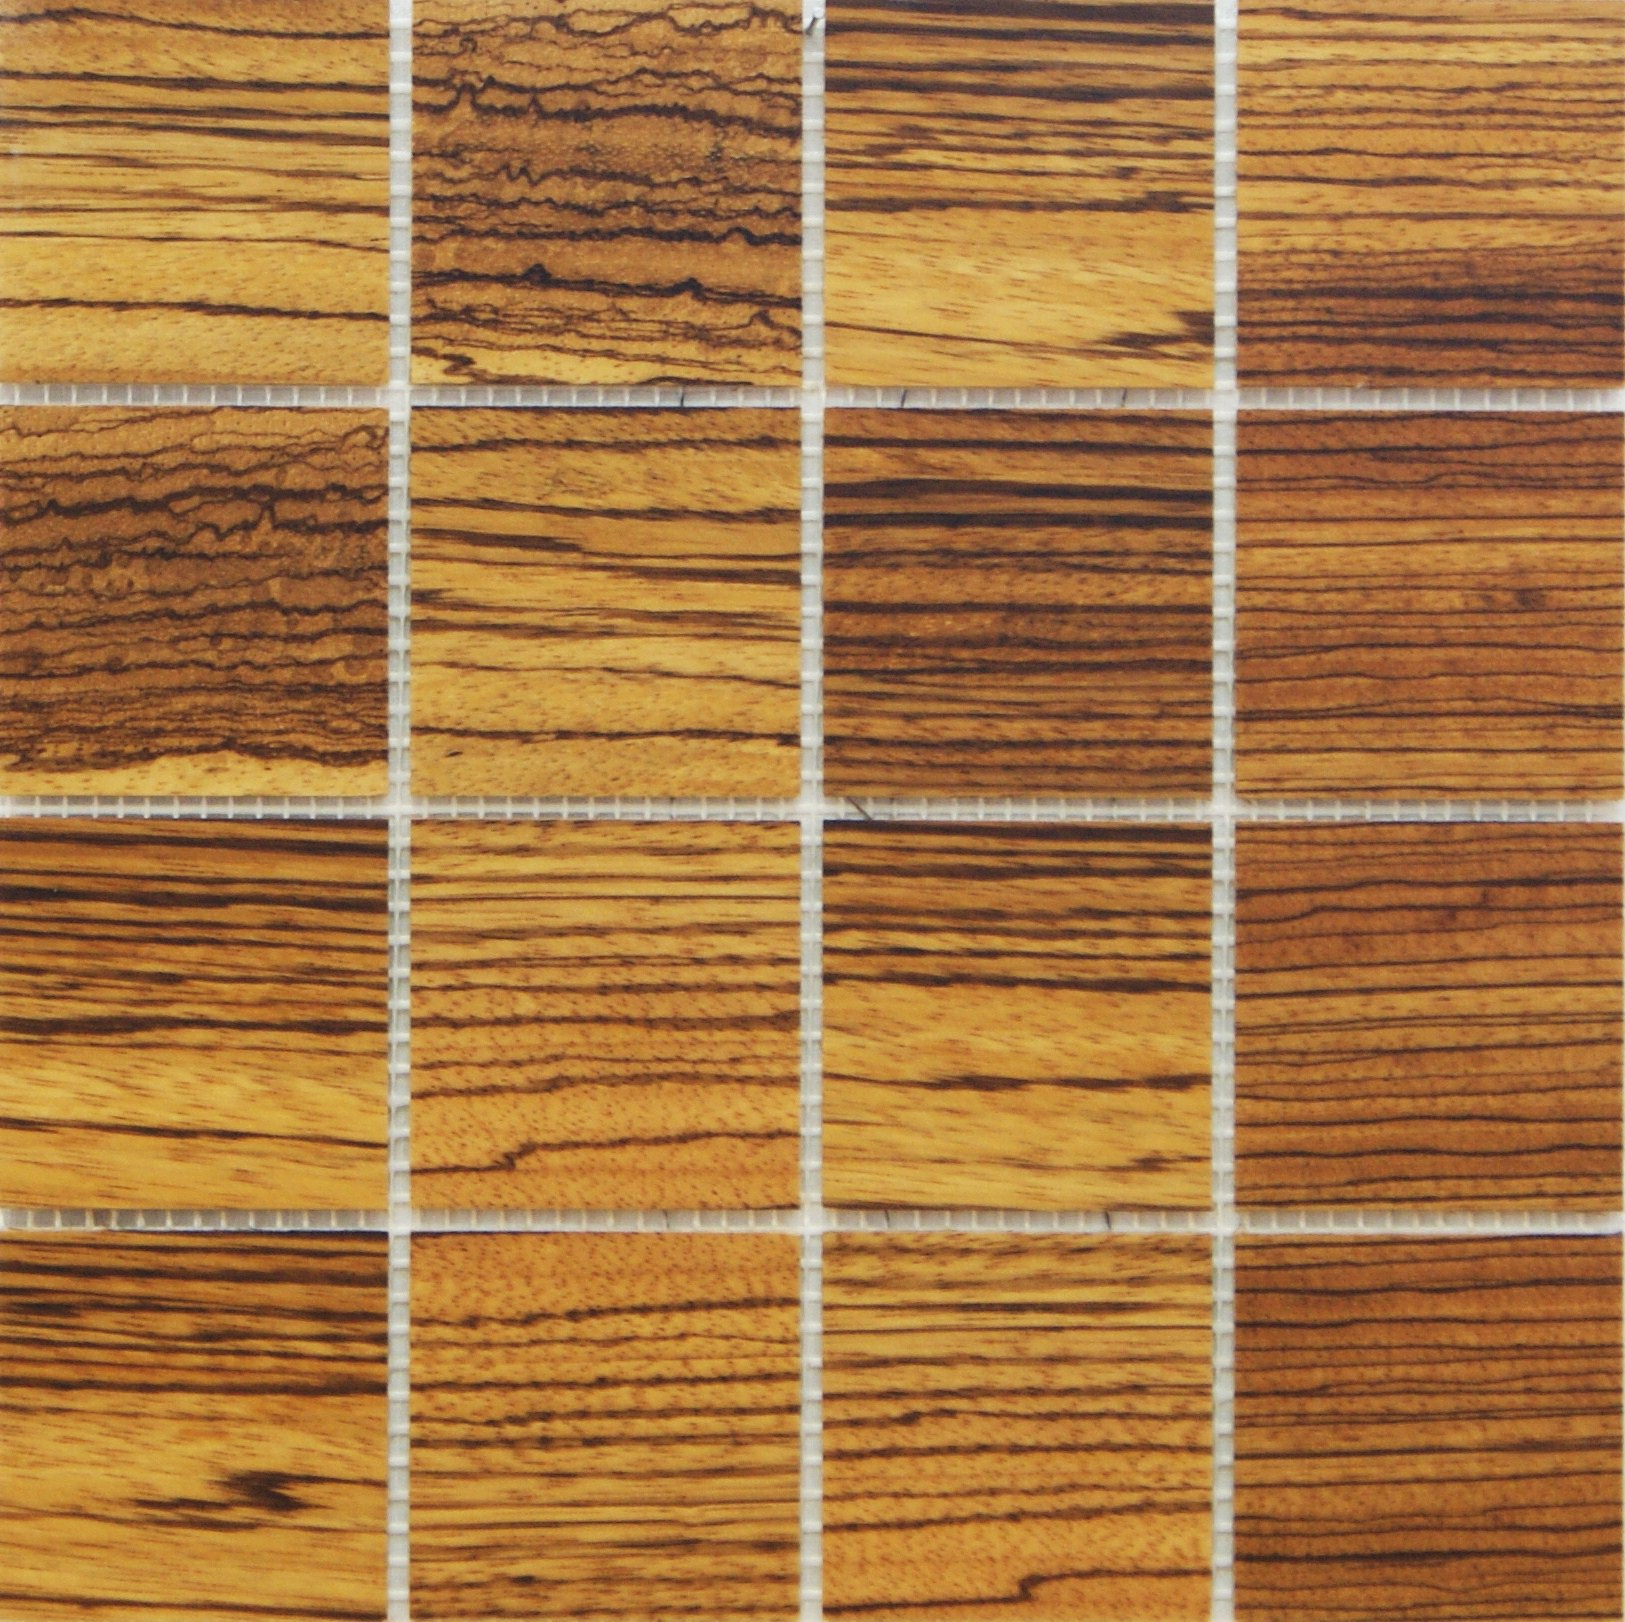 Zebrawood 77mm x 77mm Wood Tile